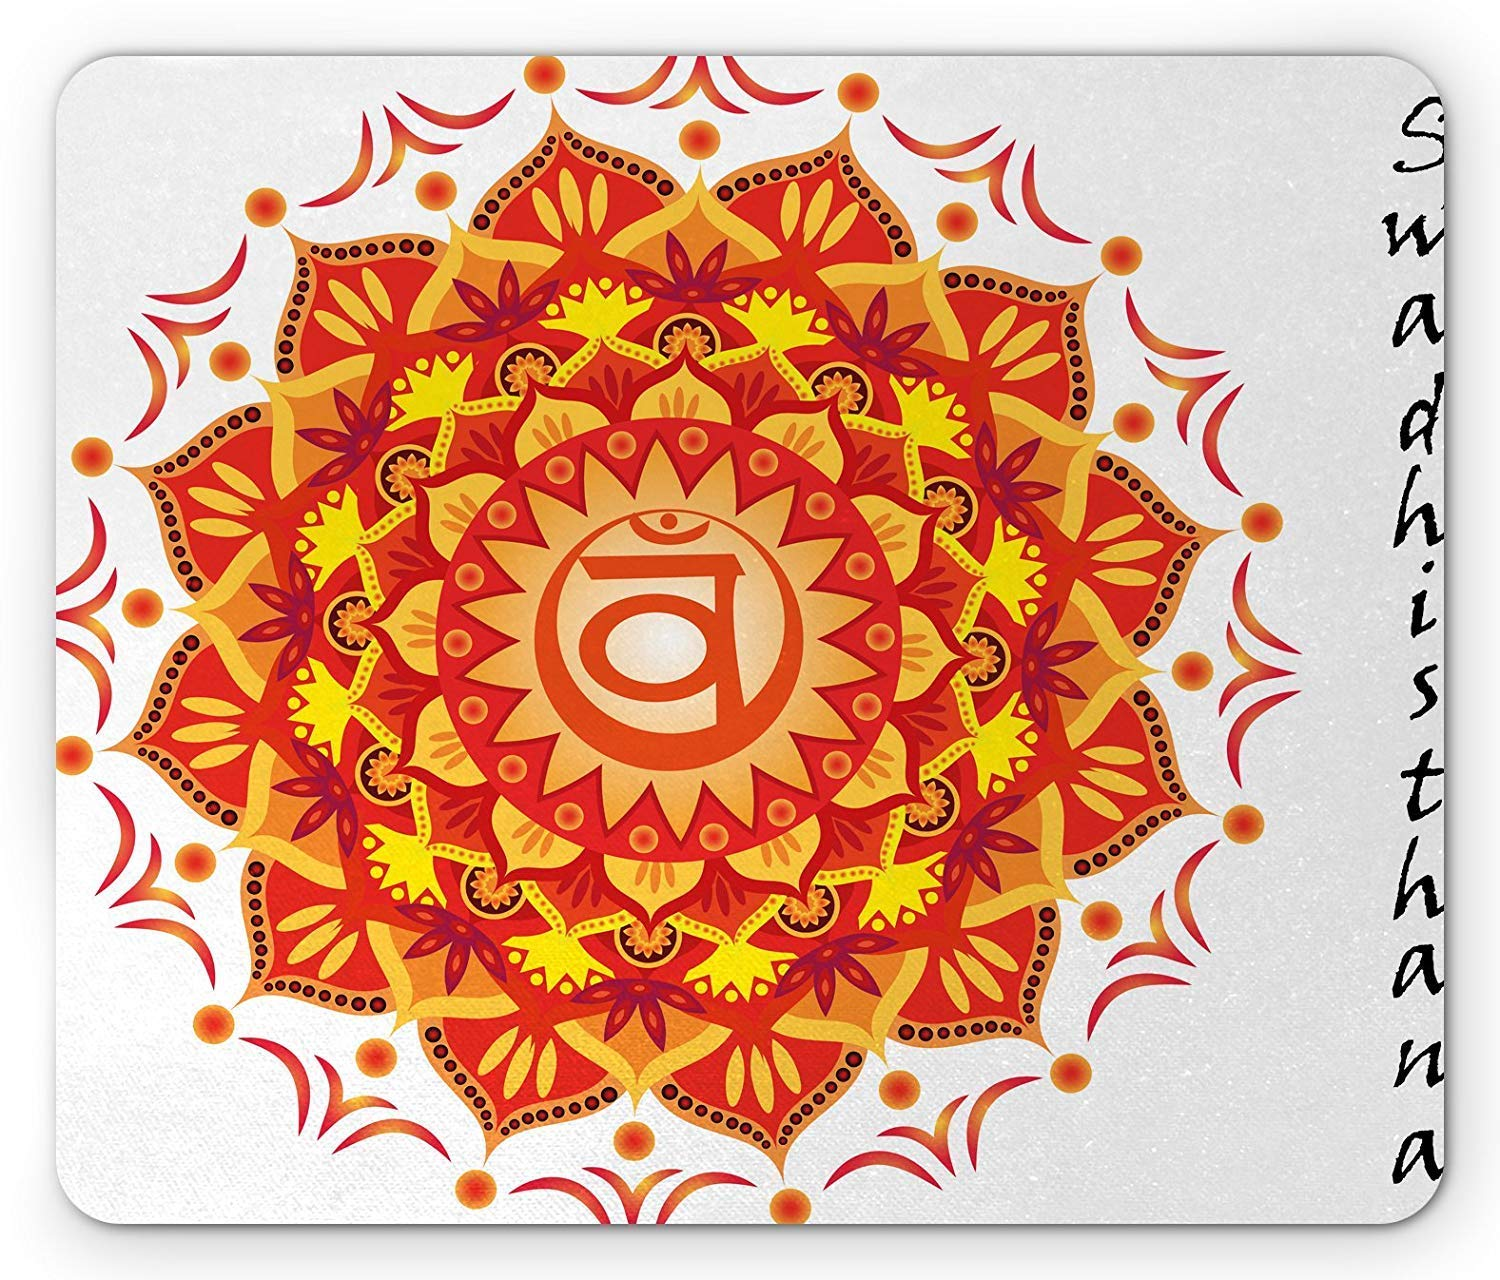 Chakra Mouse Pad, Lotus Flower with Chakra Centre of The